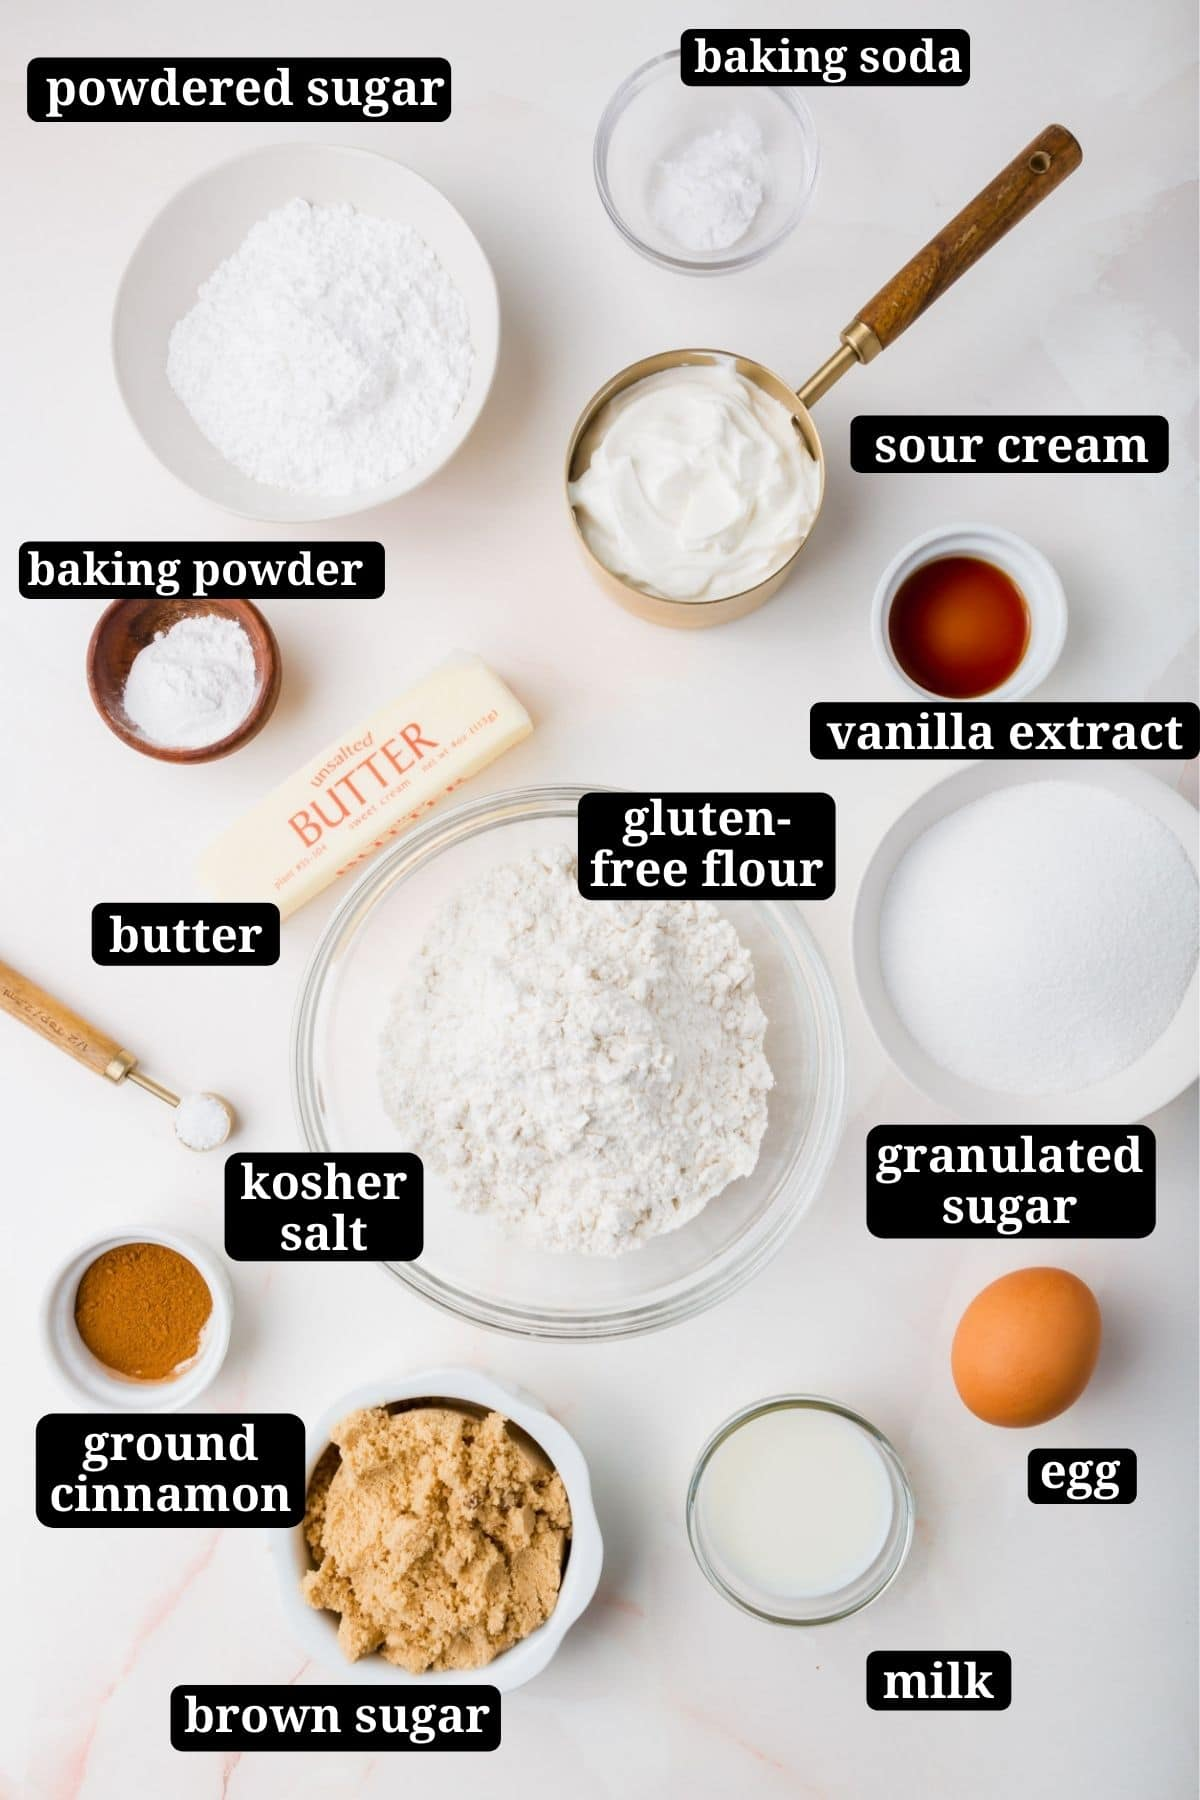 Ingredients for making gluten-free coffee cake with cinnamon streusel.